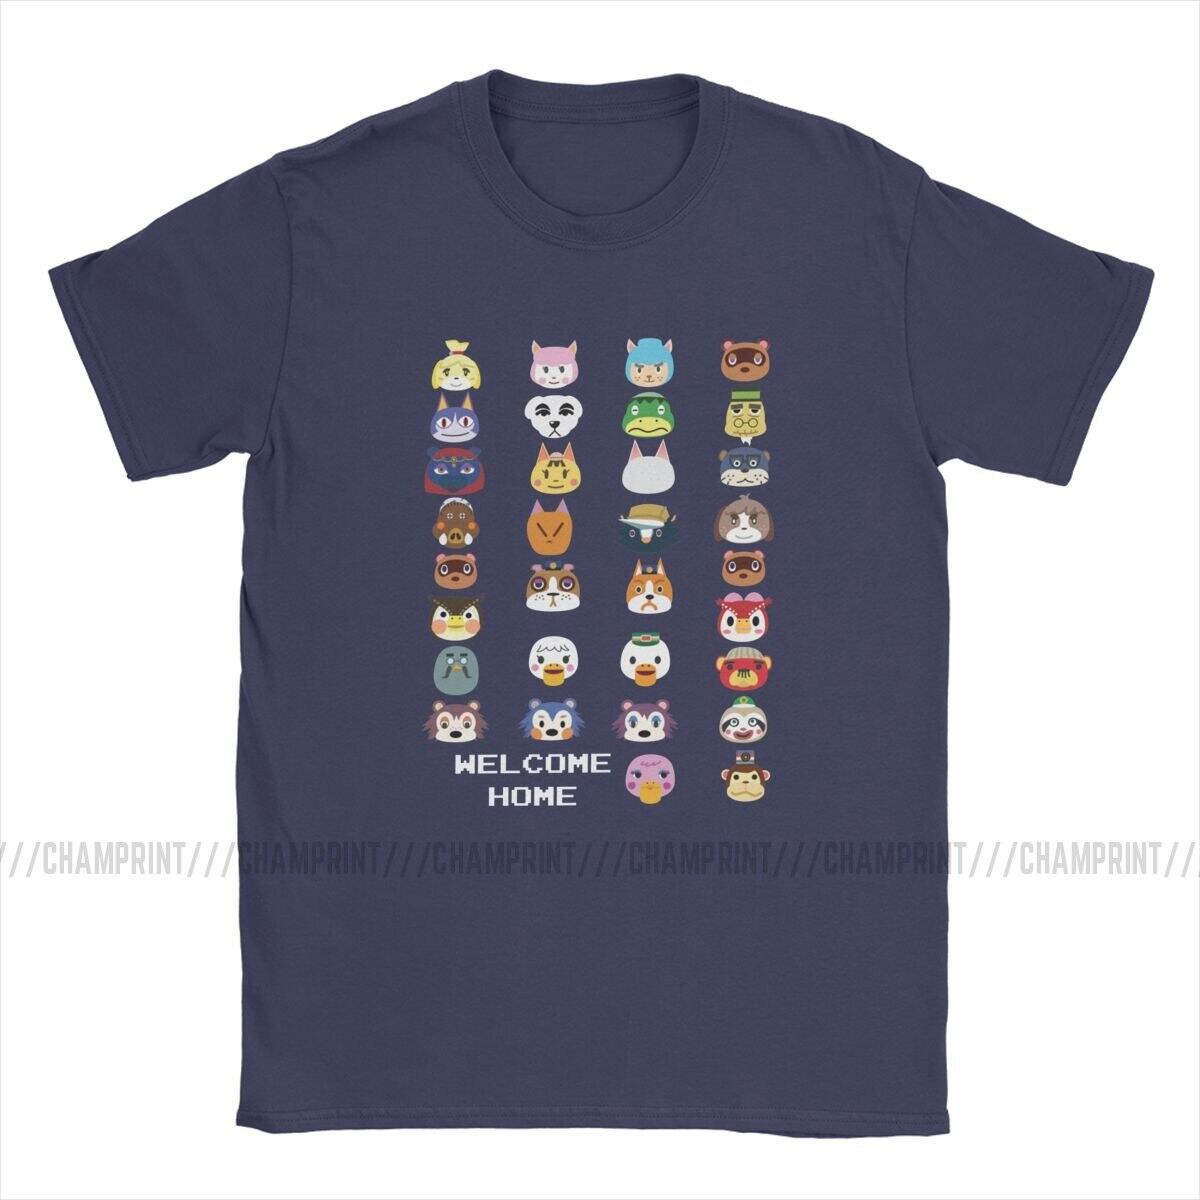 Welcome Home Animal Crossing Icons Shirt, Sky Blue / L